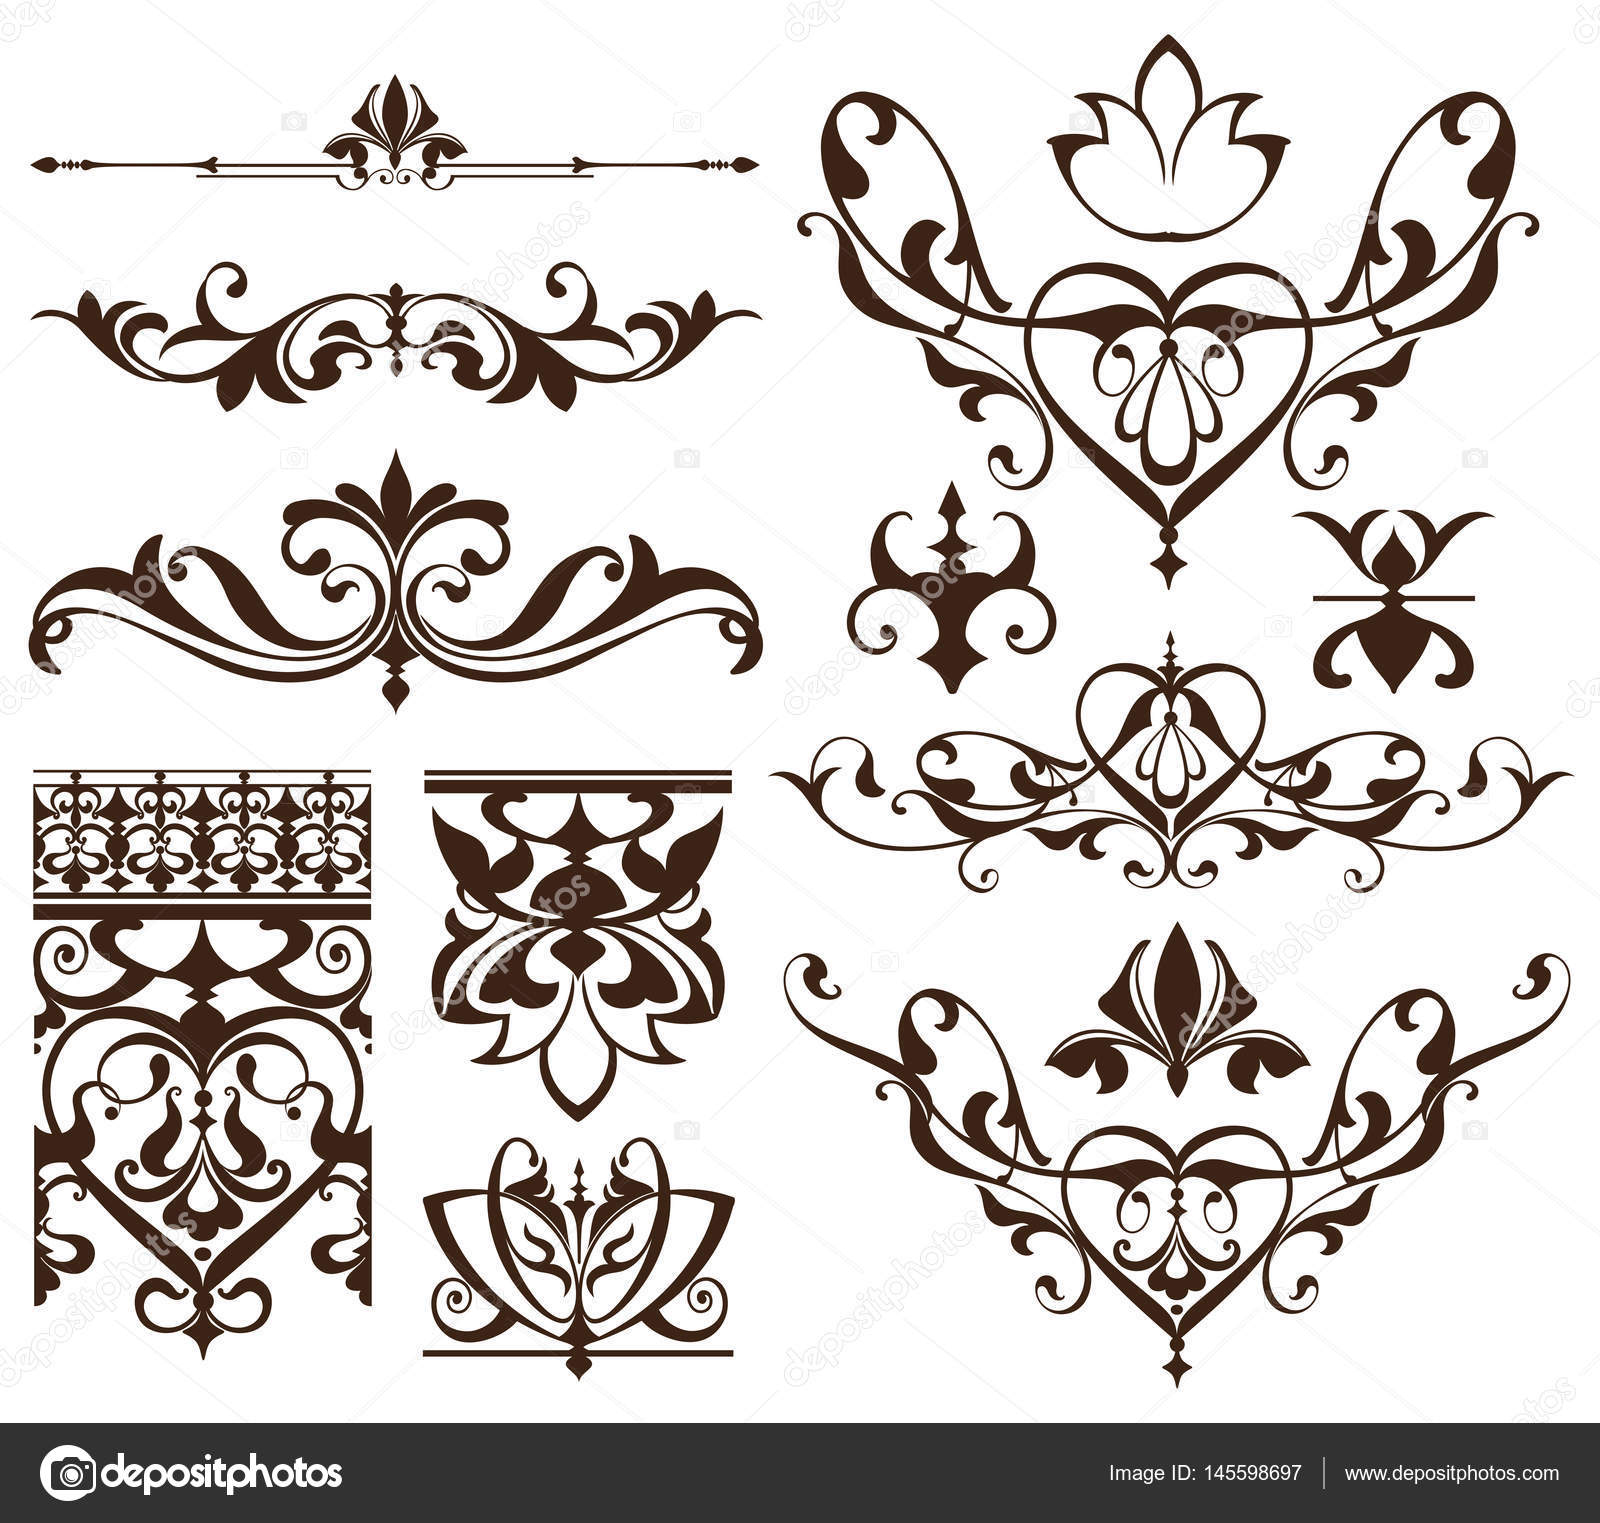 art deco design elements of vintage ornaments and borders corners of the frame isolated art. Black Bedroom Furniture Sets. Home Design Ideas